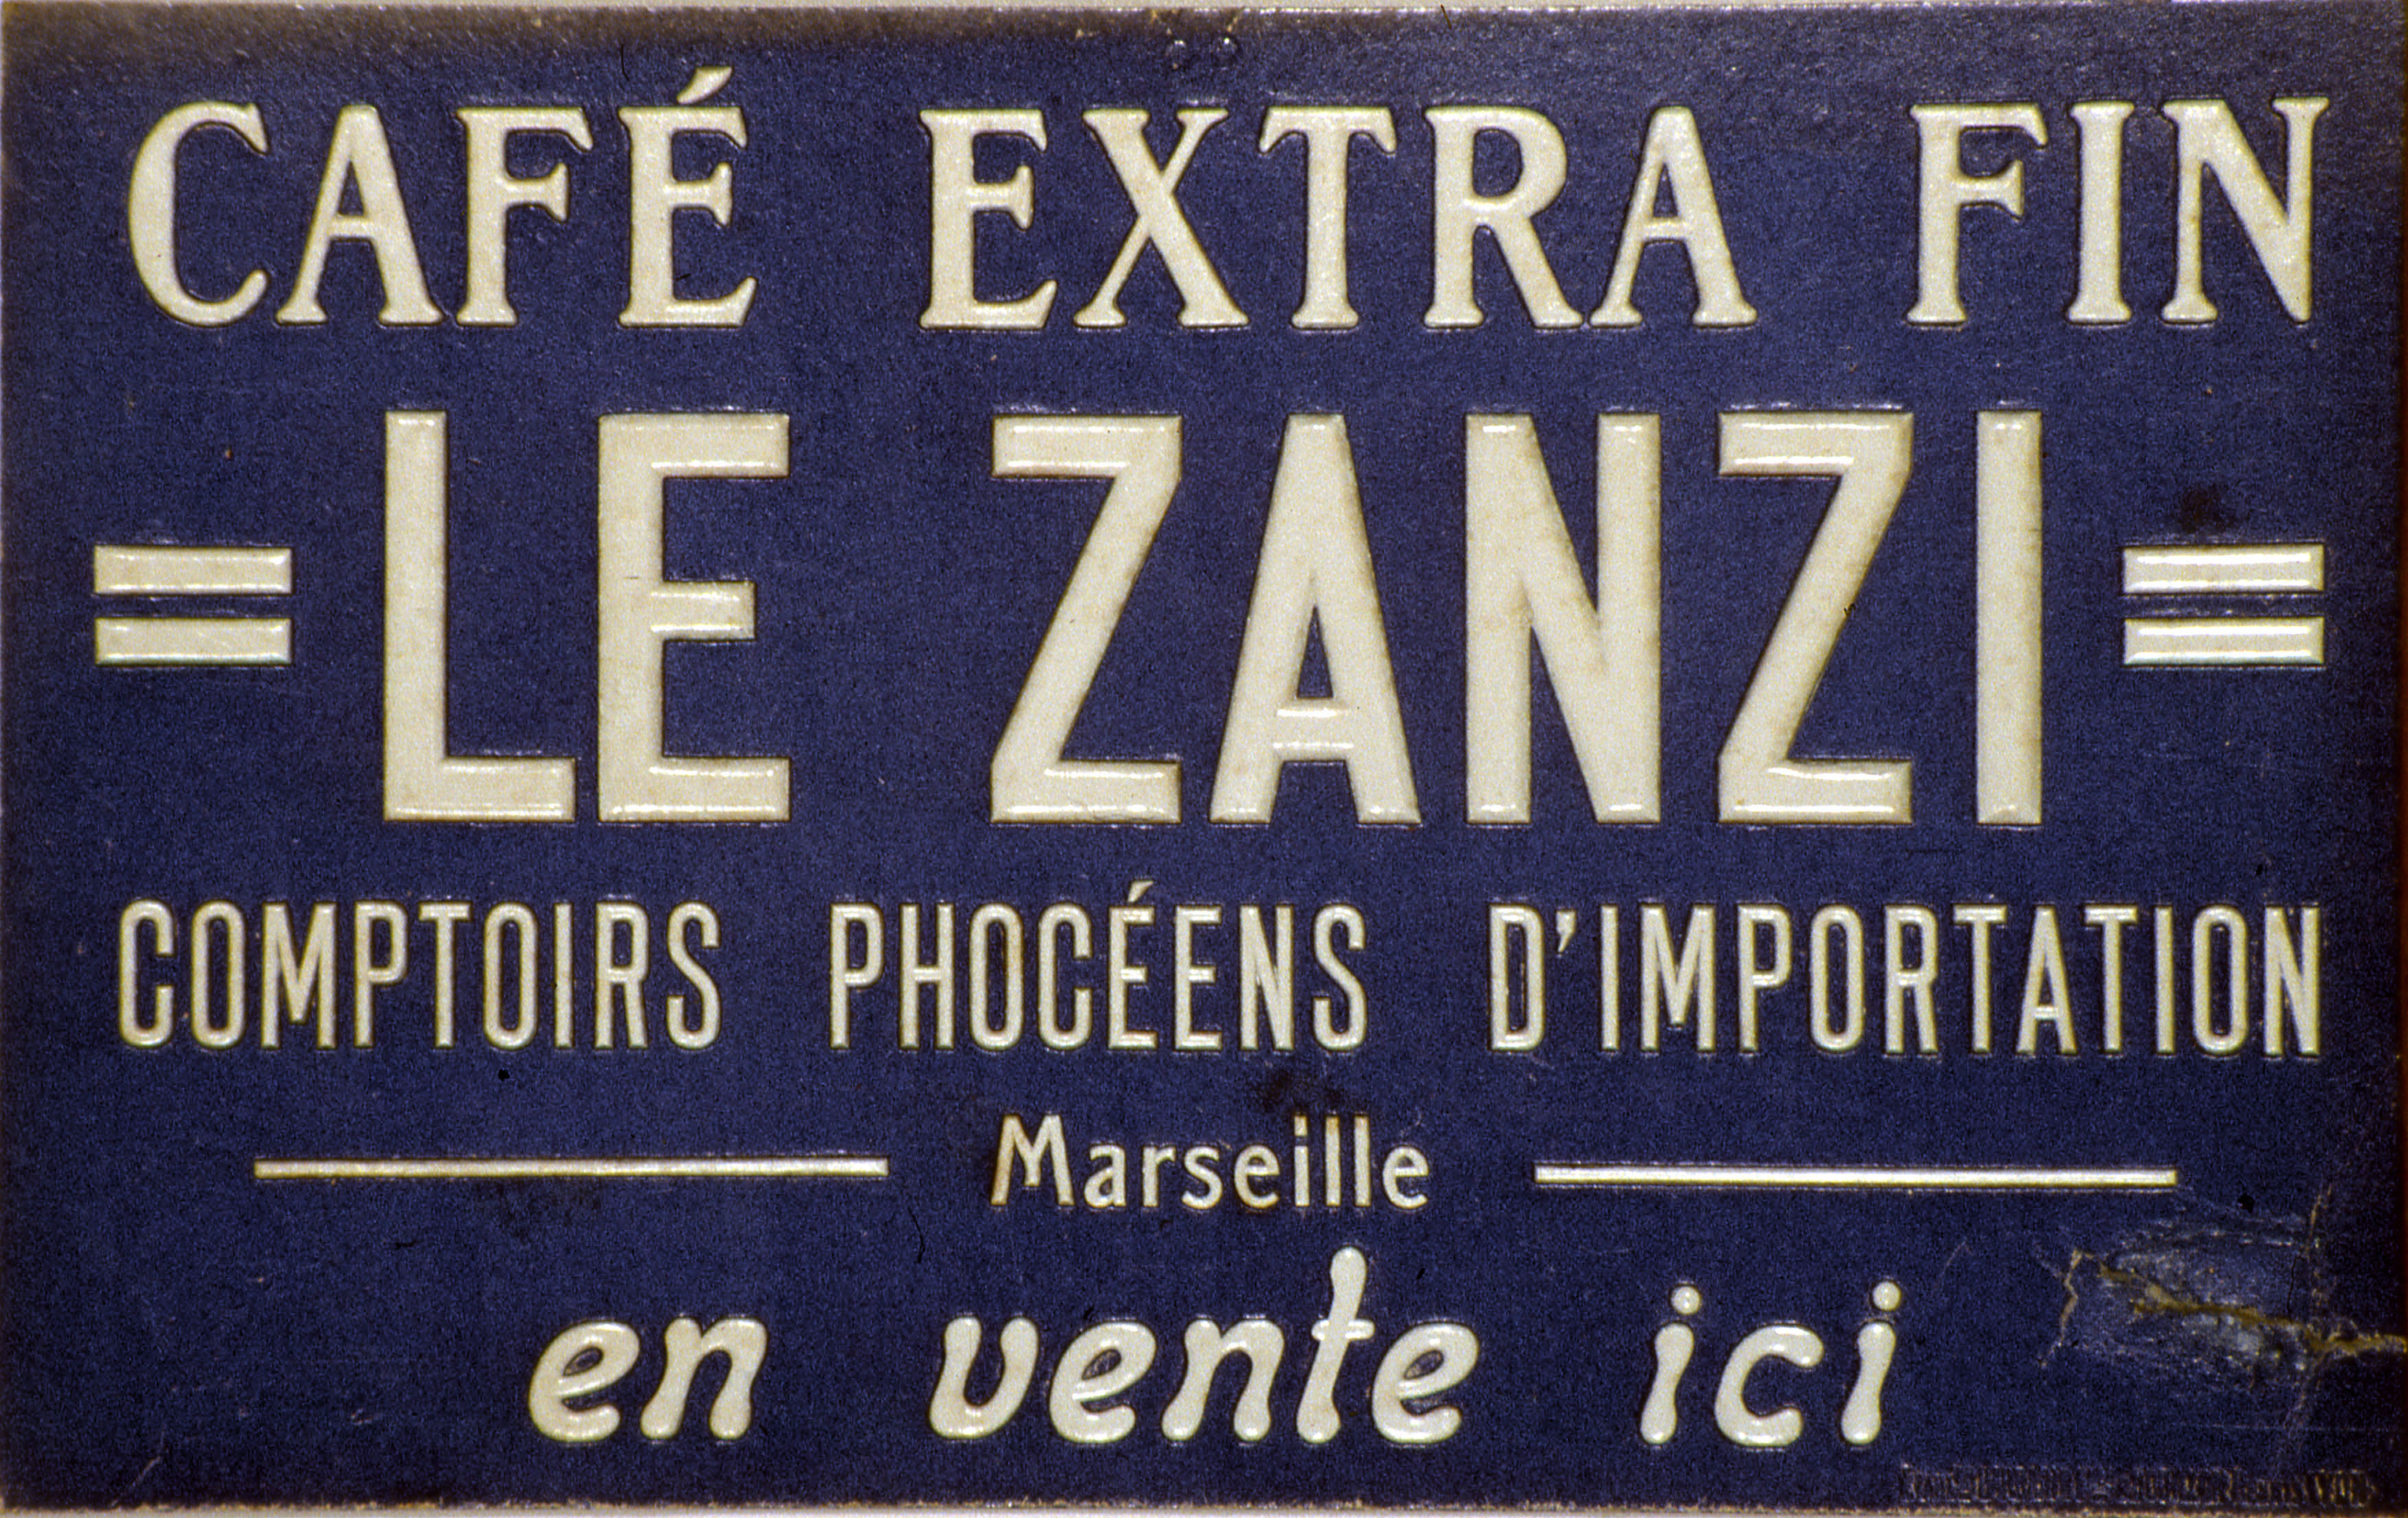 Cafe le zanzi ccimp © collection cci marseille provence